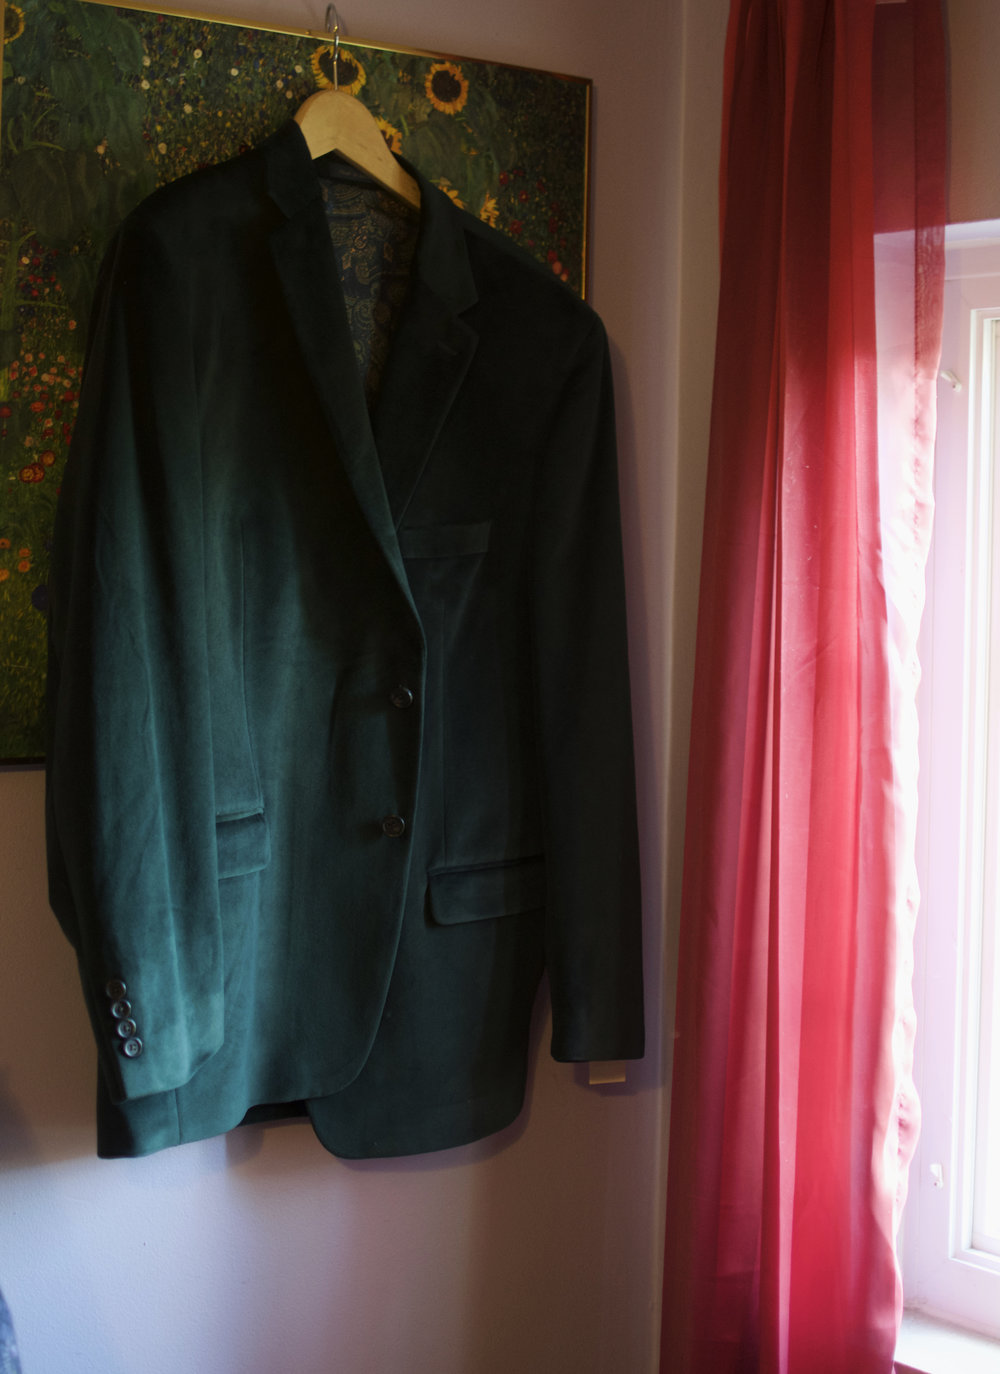 NelsonWeddingJacket1.jpg